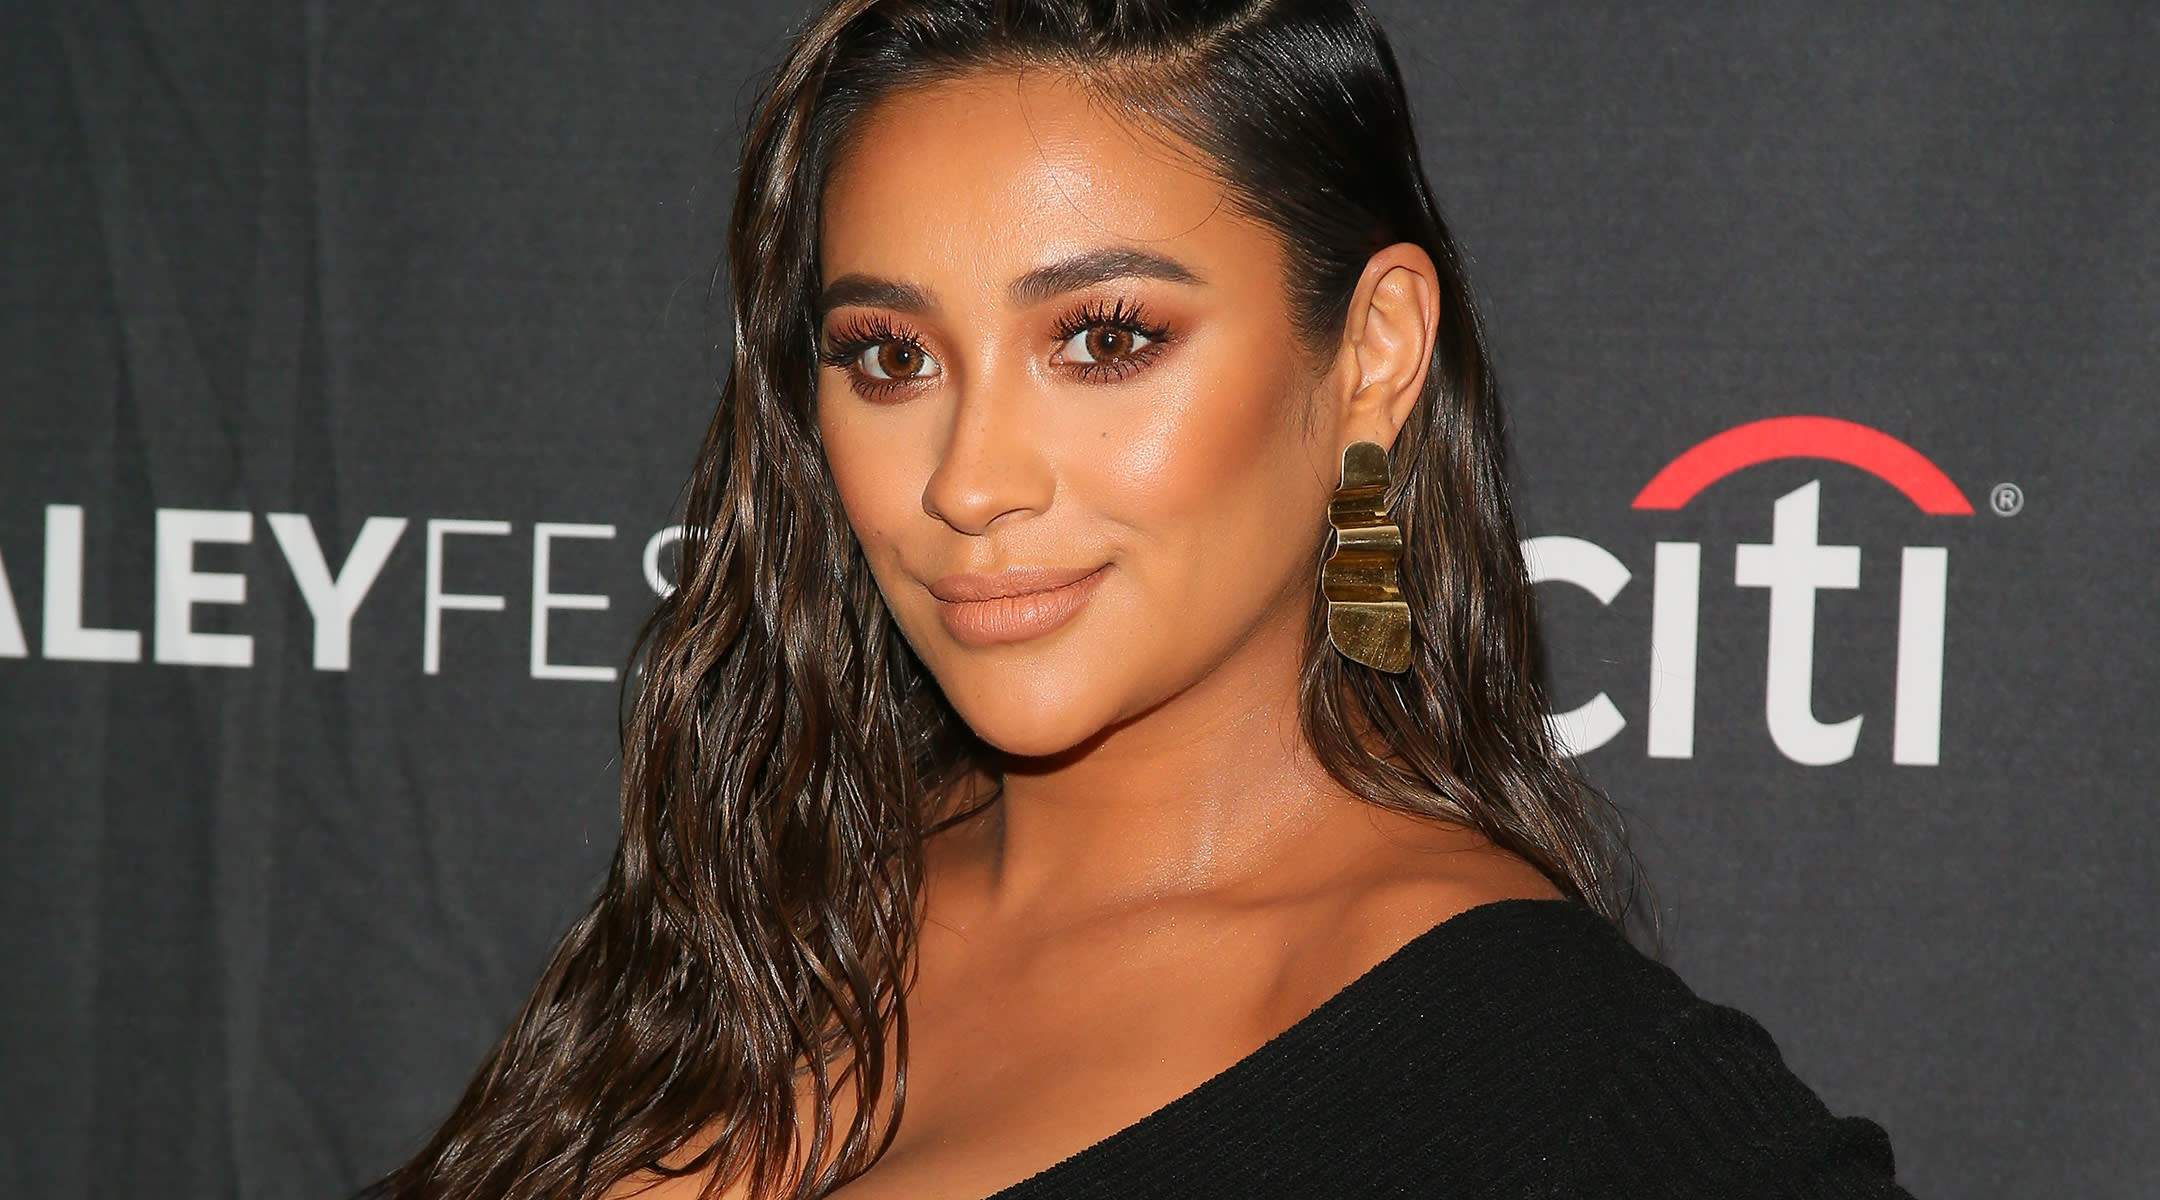 After 33 Hours in Labor, Actress Shay Mitchell Welcomes a Baby Girl